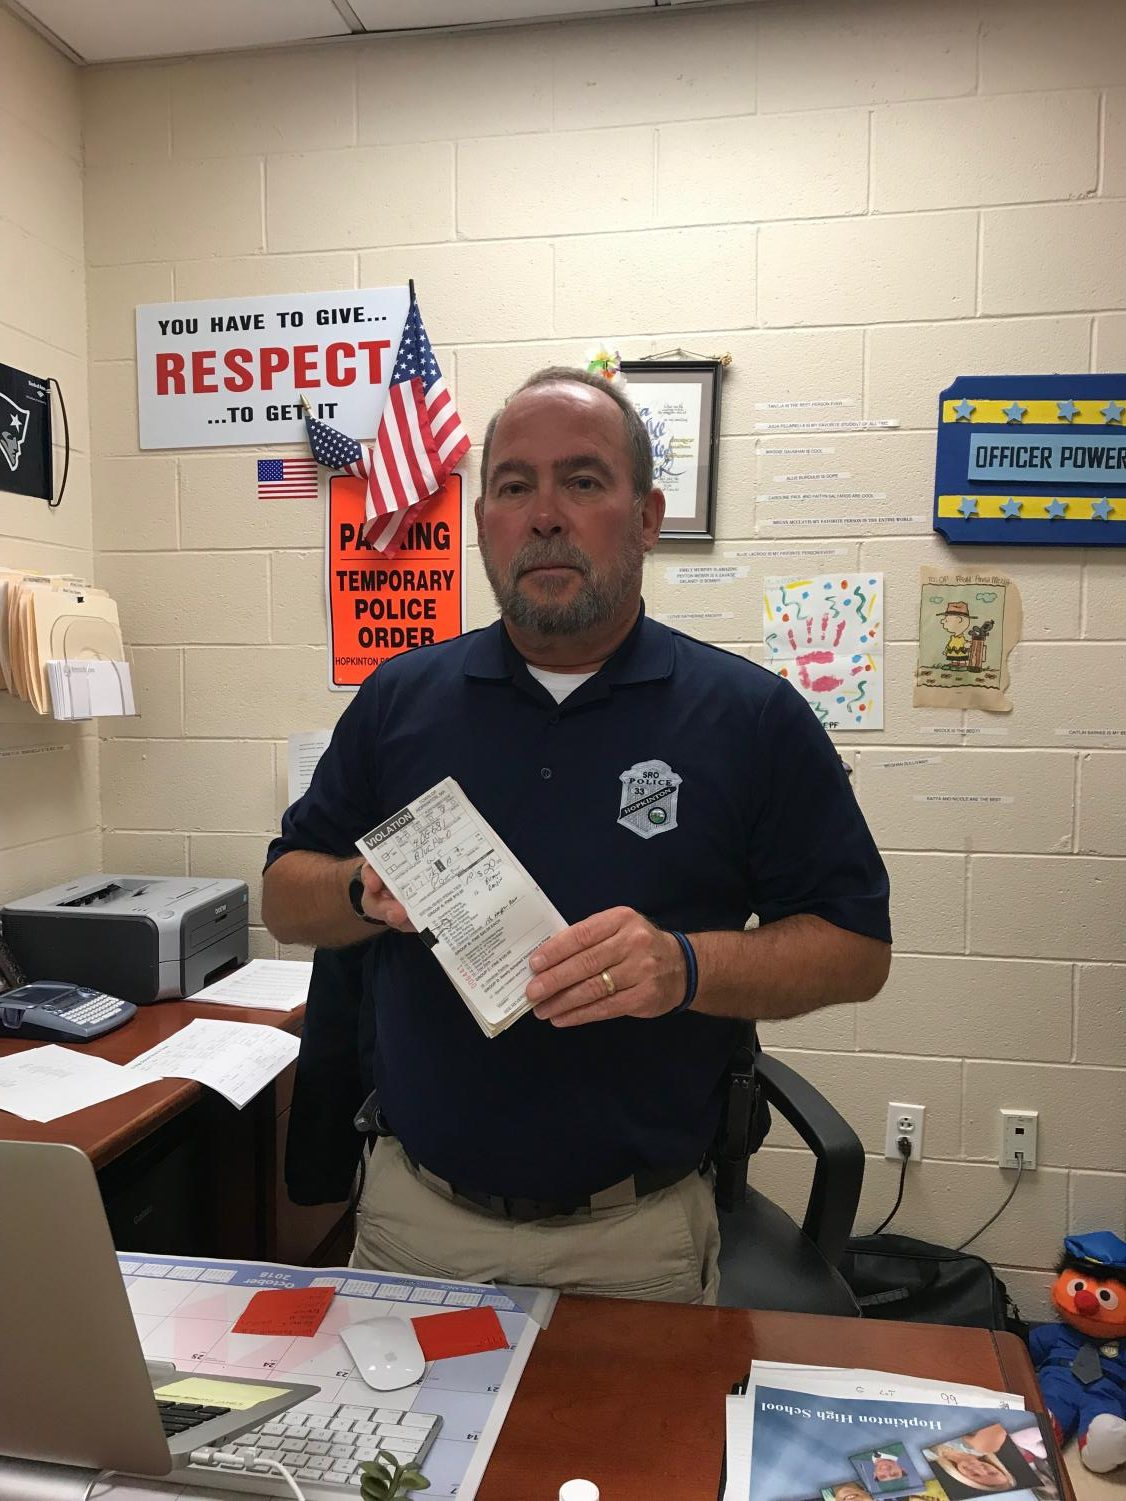 Officer Powers holds the parking tickets he issues out.